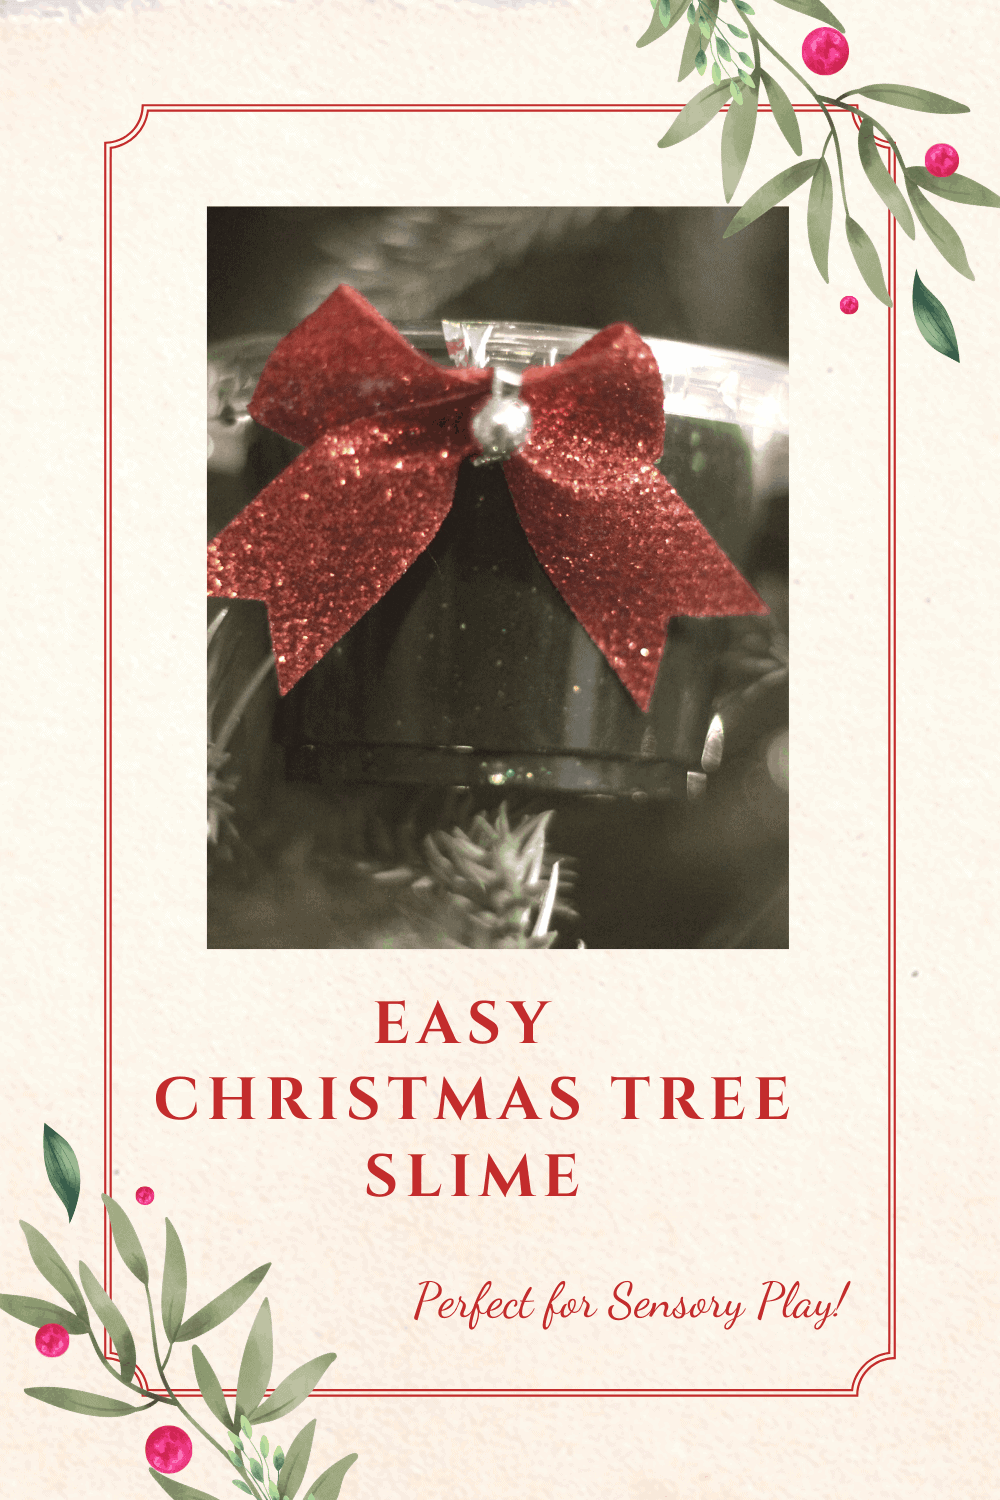 Christmas Tree slime recipe perfect as a Christmas slime recipe or as a holiday party favor idea. Perfect slime for sensory play!